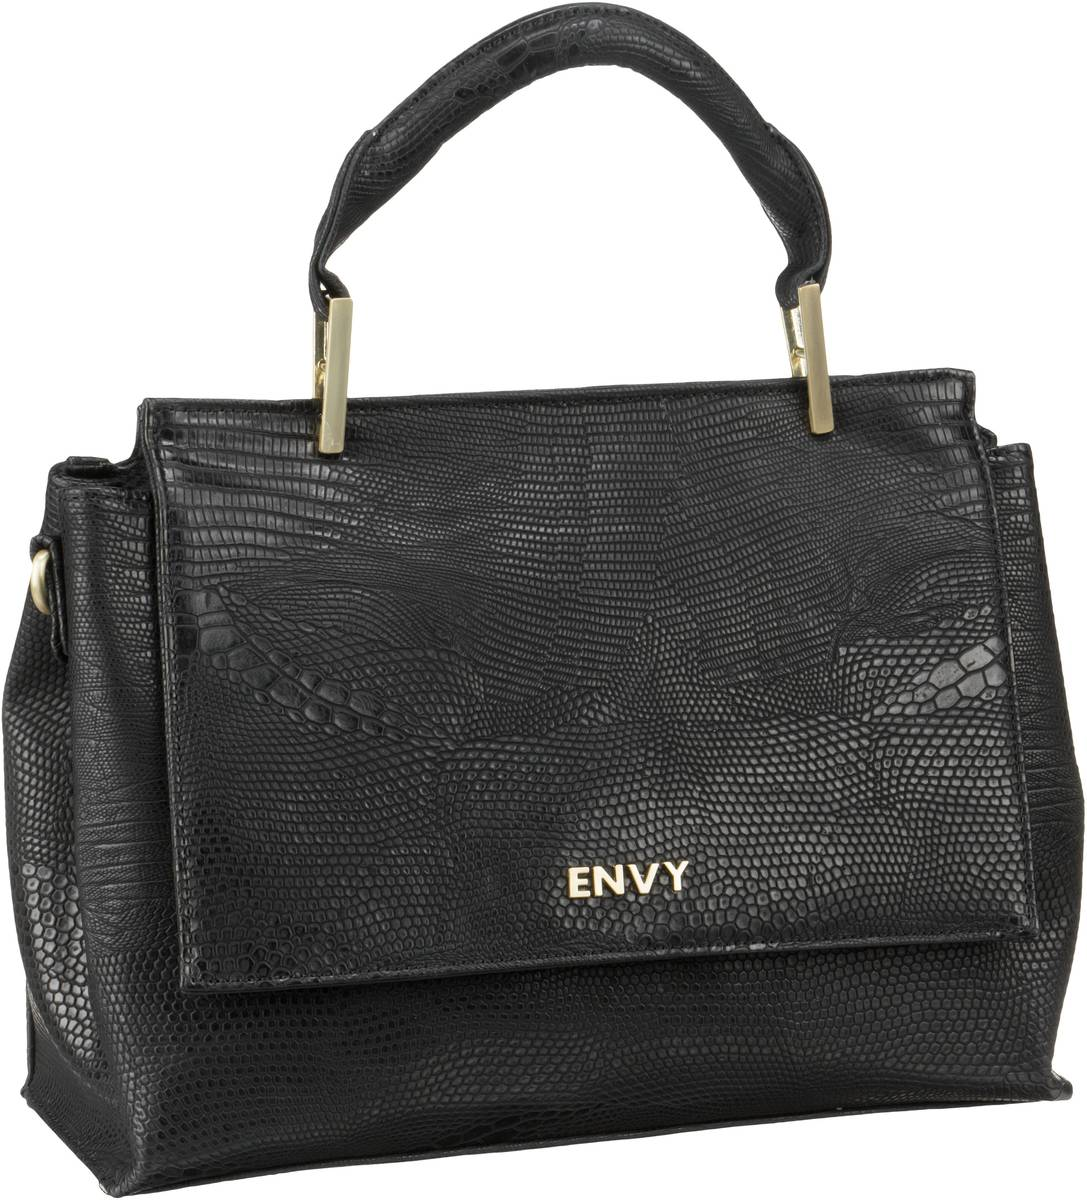 House of Envy Doctors Secret Snake Black - Hand...